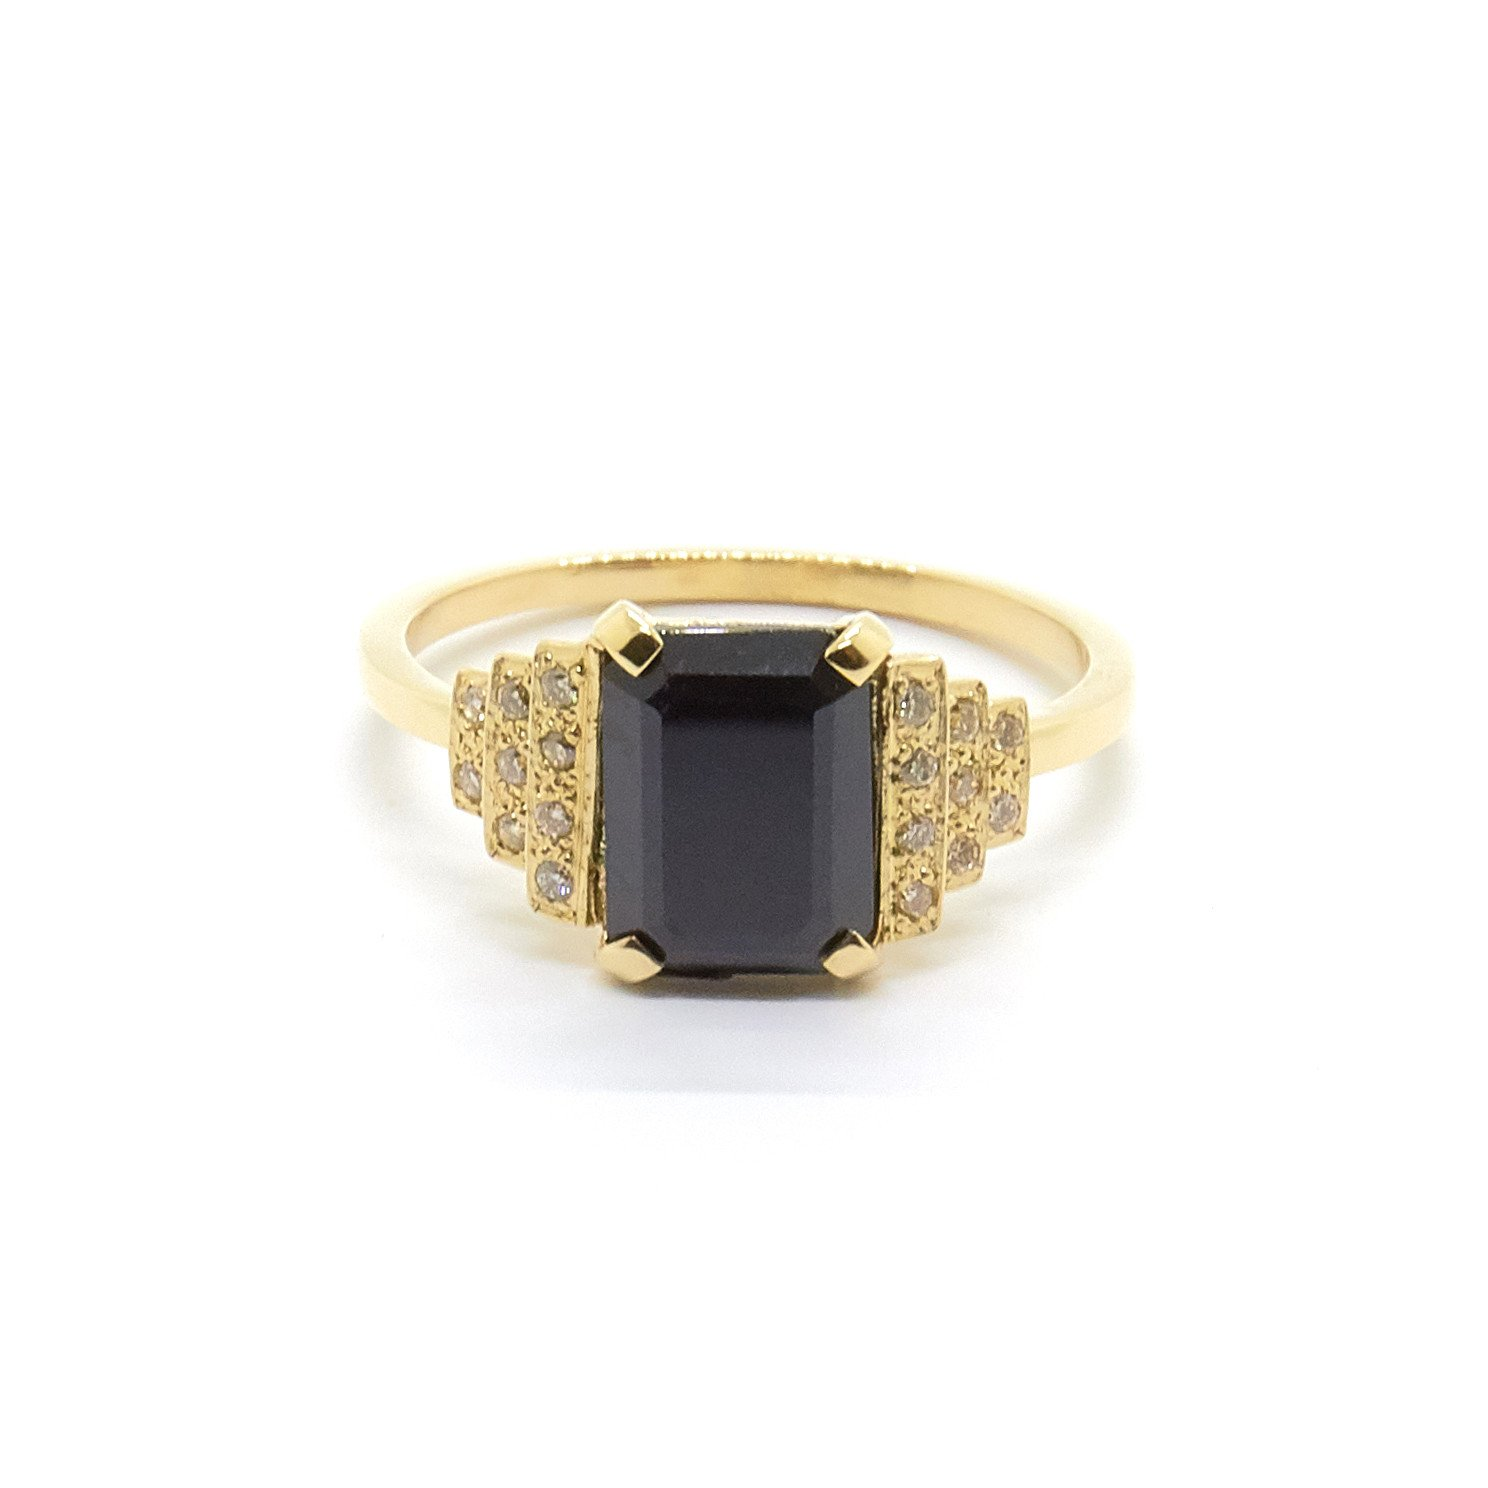 Natalie Marie Jewellery Maya Ring with Black Spinel and Champagne Diamonds